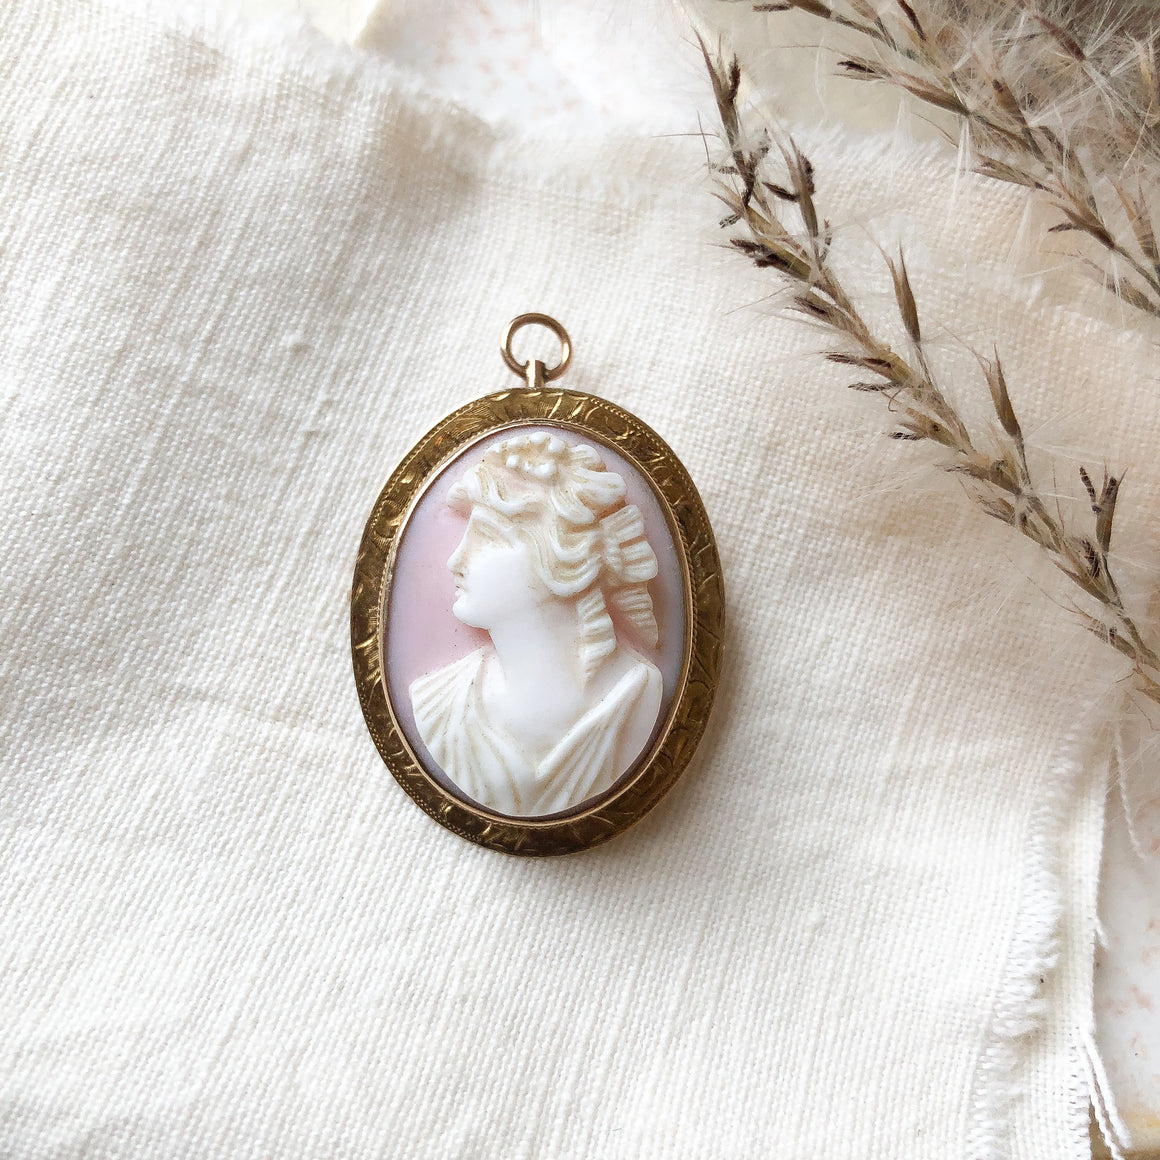 14k Shell cameo pin